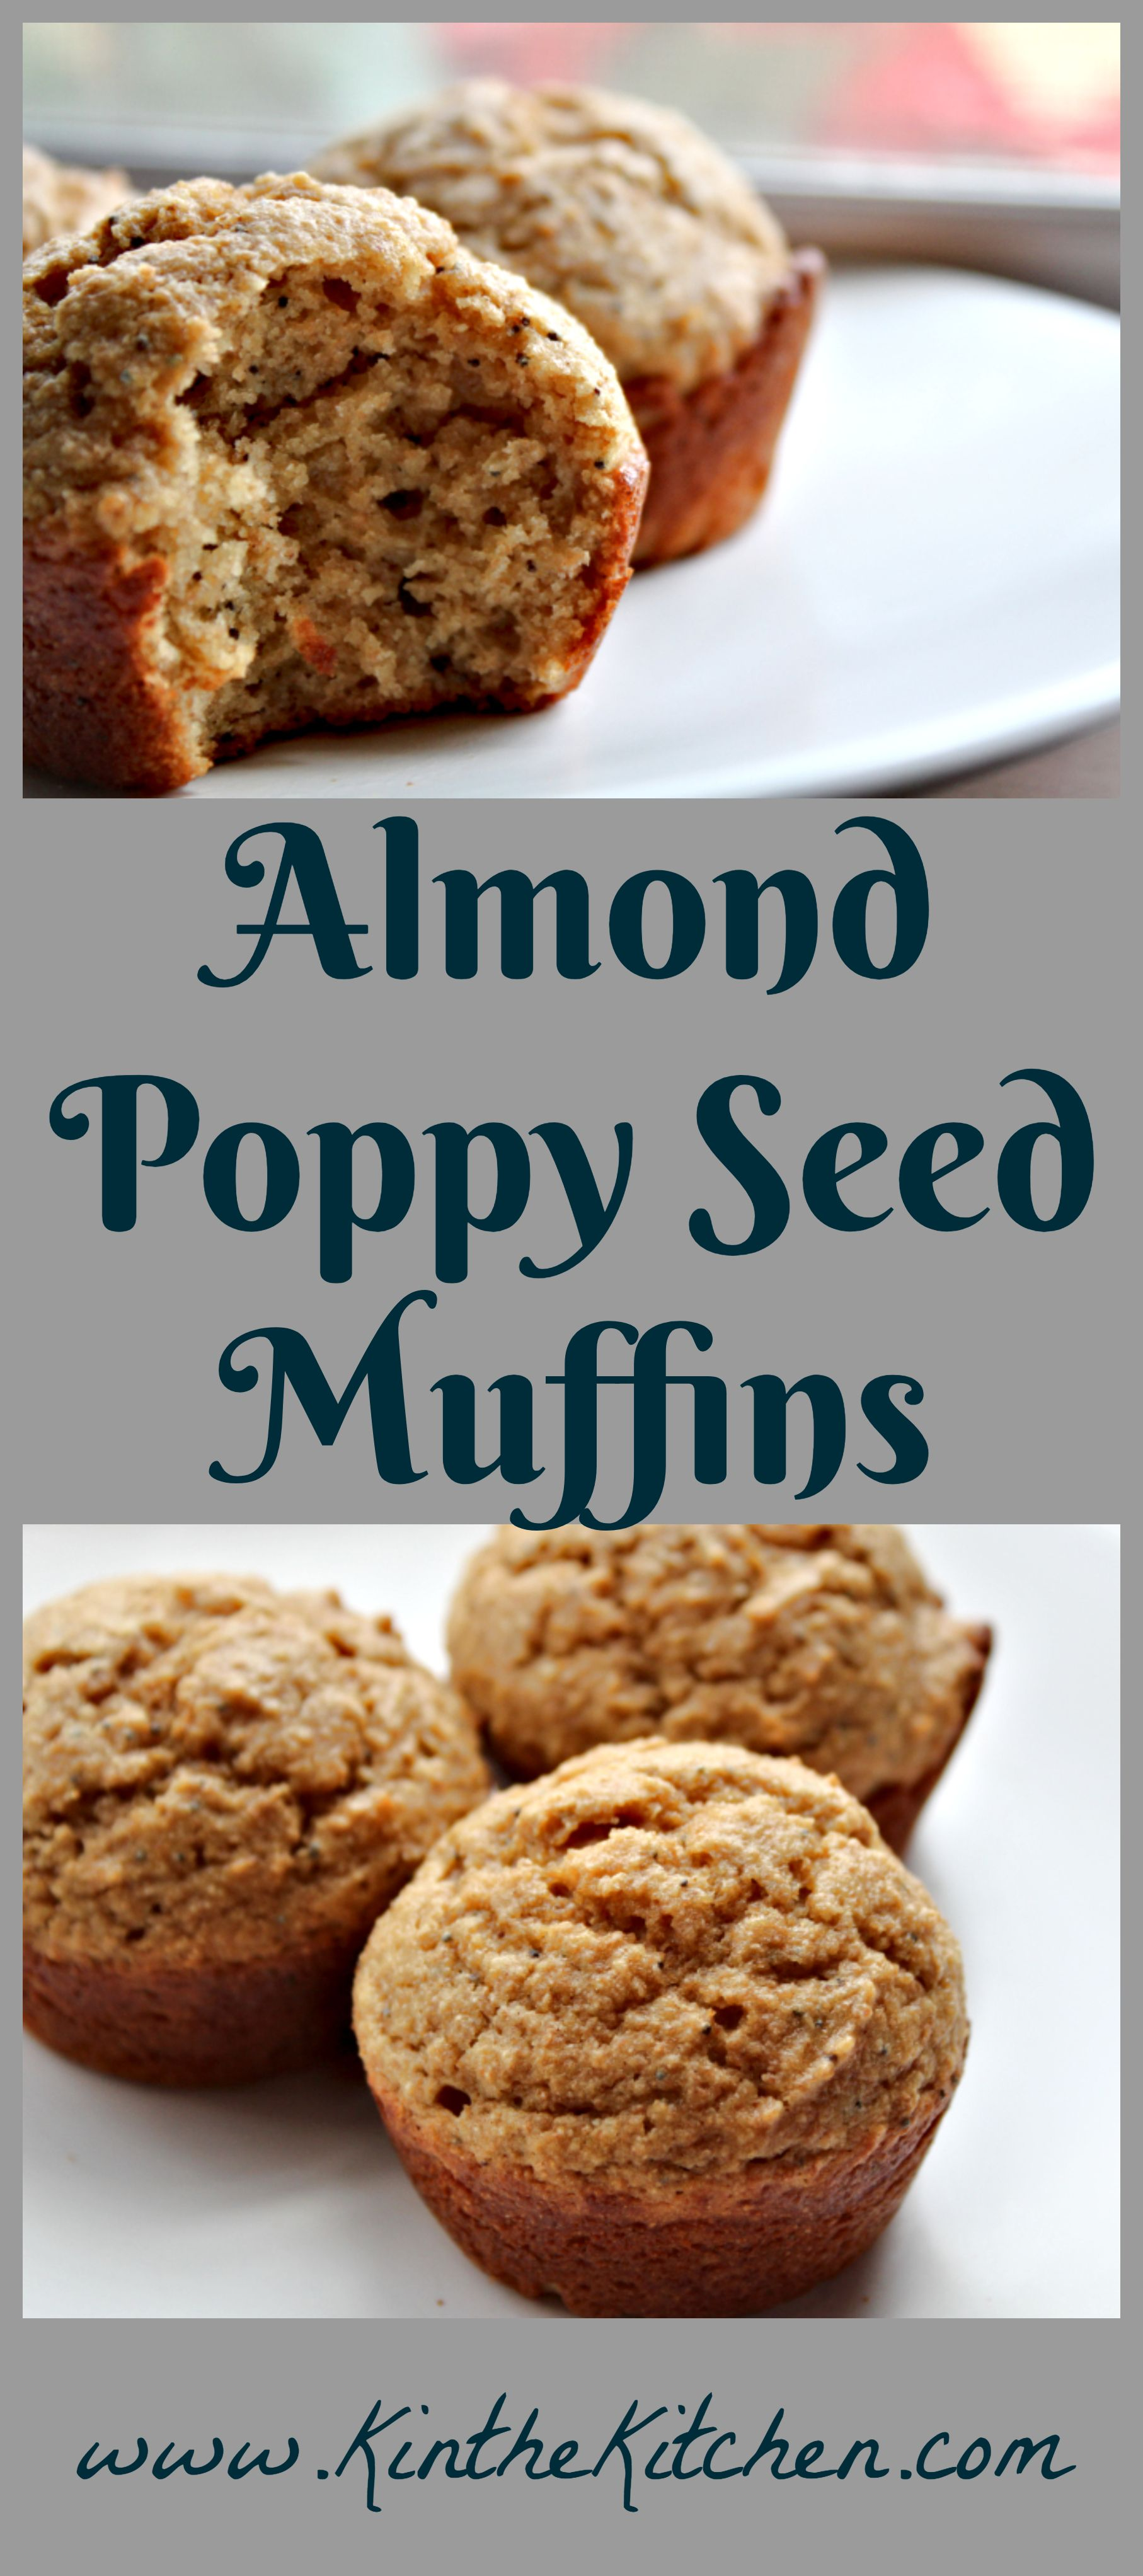 Almond Poppy Seed Muffins KintheKitchen Muffins, Whole